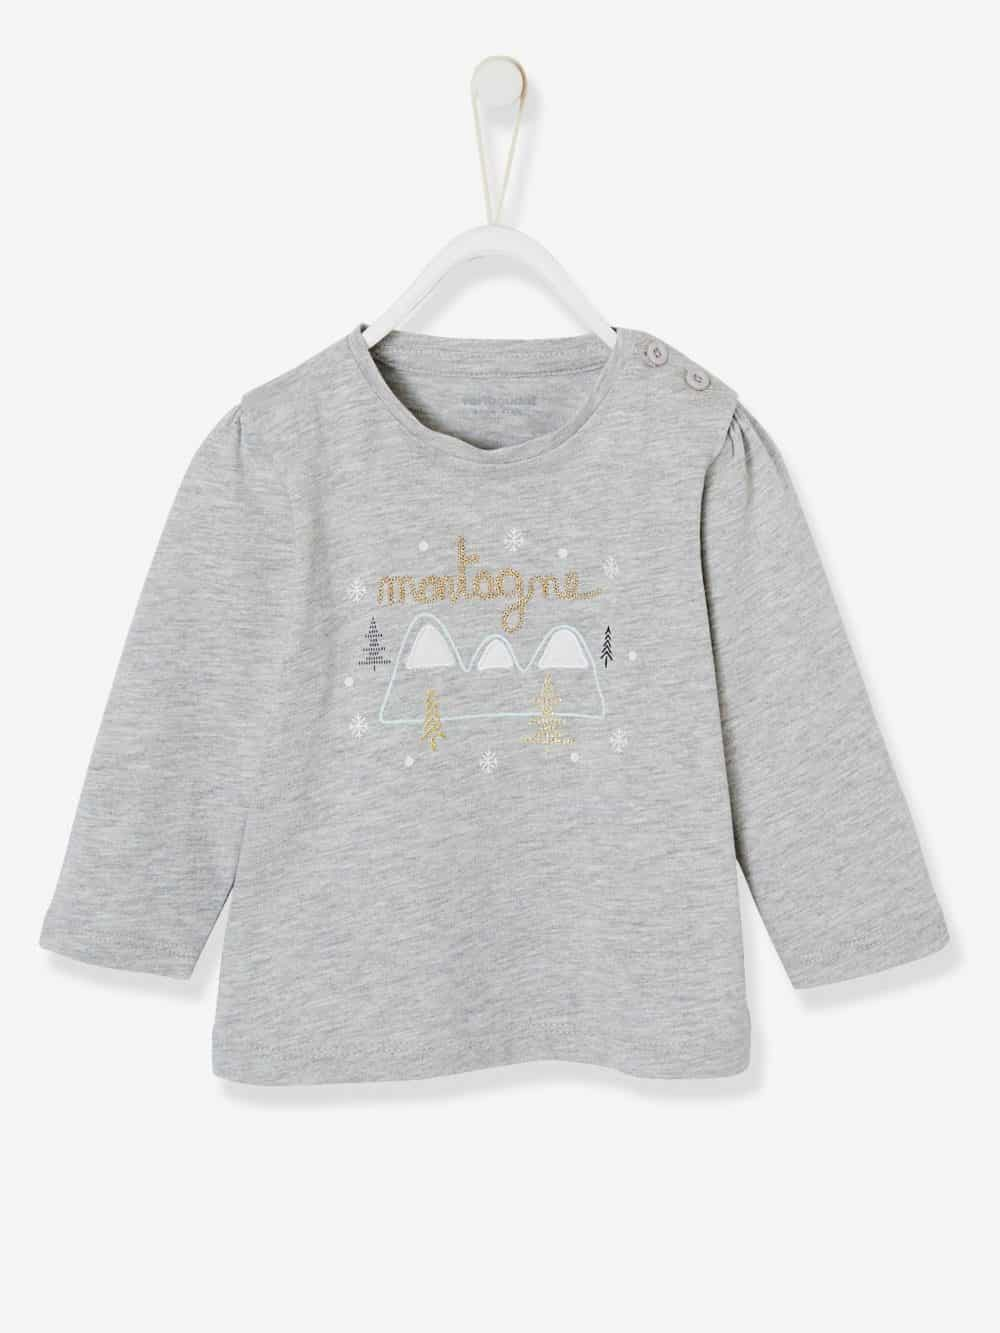 Stylish Top for Baby Girls grey light mixed color